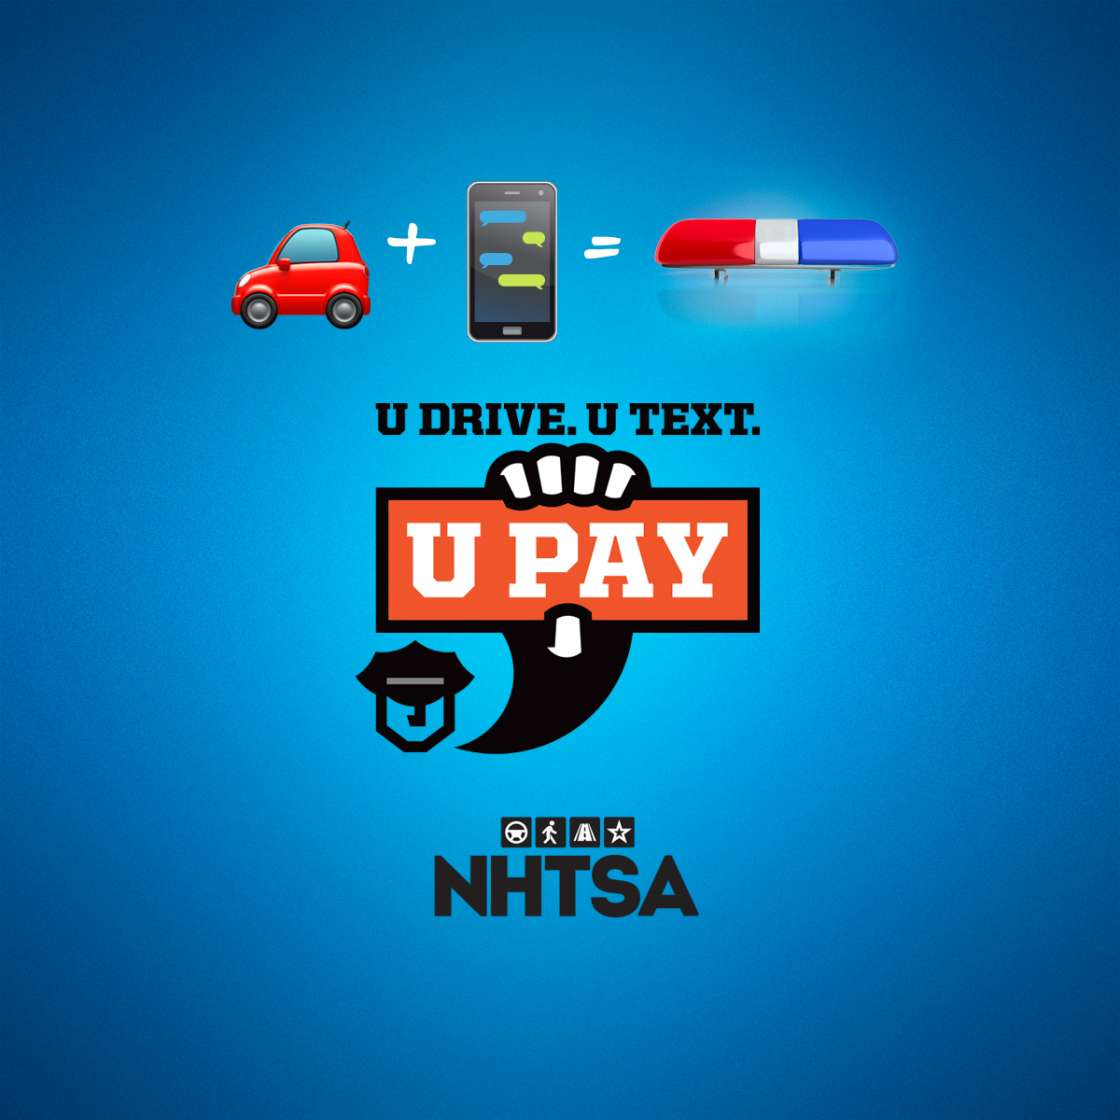 NHTSA's U Drive. U Text. U Pay. campaign reminds drivers of the deadly dangers and the legal consequences – including fines – of texting behind the wheel. From April 8-12, you may notice an increase in police enforcing texting laws and reminding drivers of the dangers.